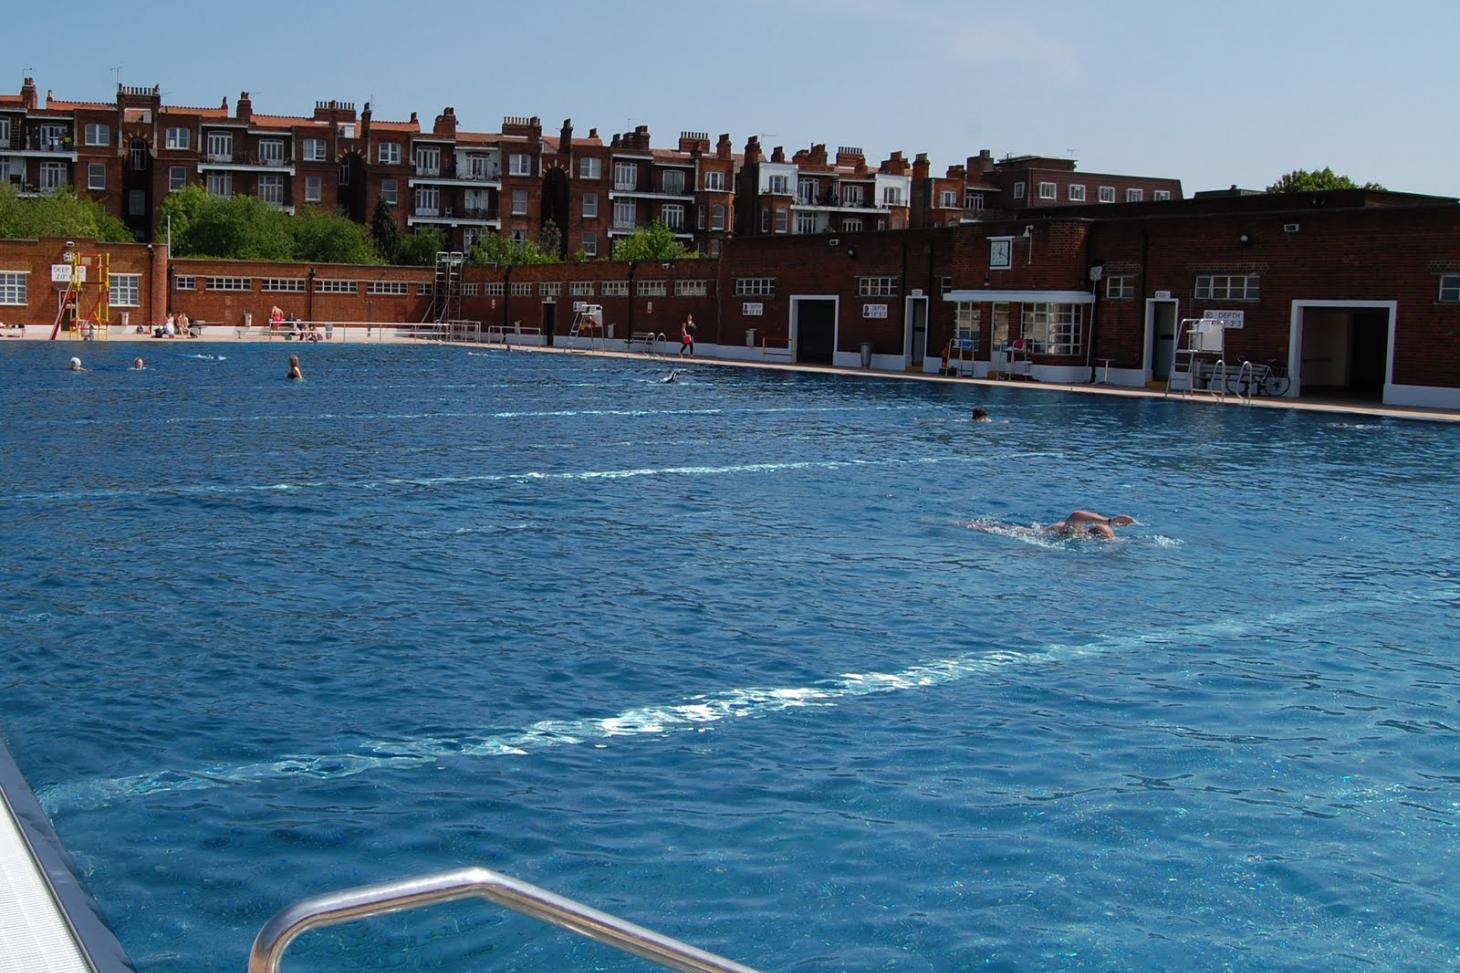 Parliament Hill Lido Outdoor swimming pool